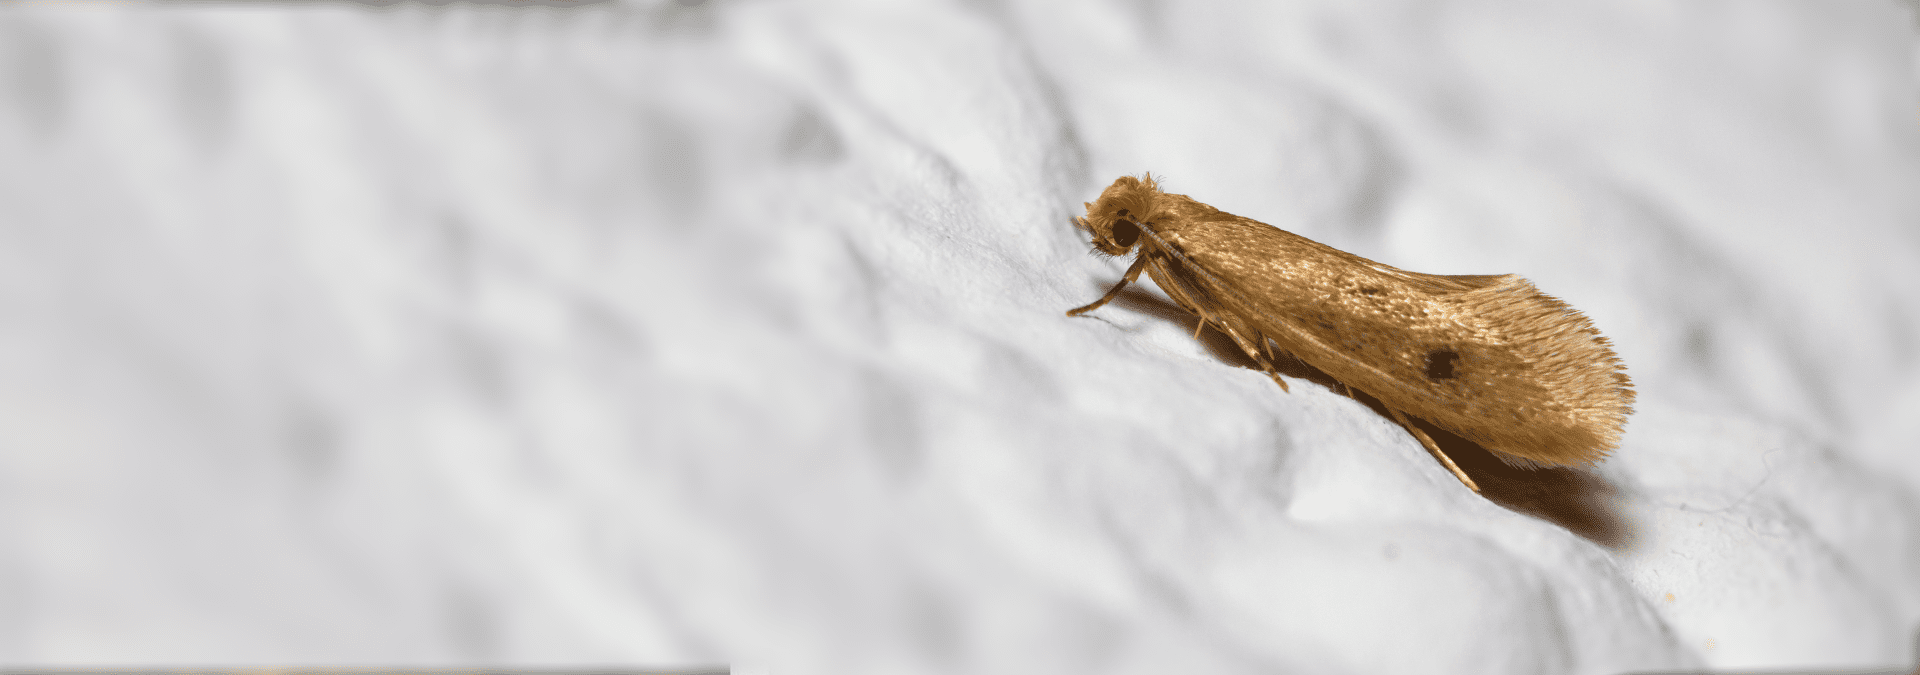 a case making clothes moth on white fabric in a jacksonville florida home